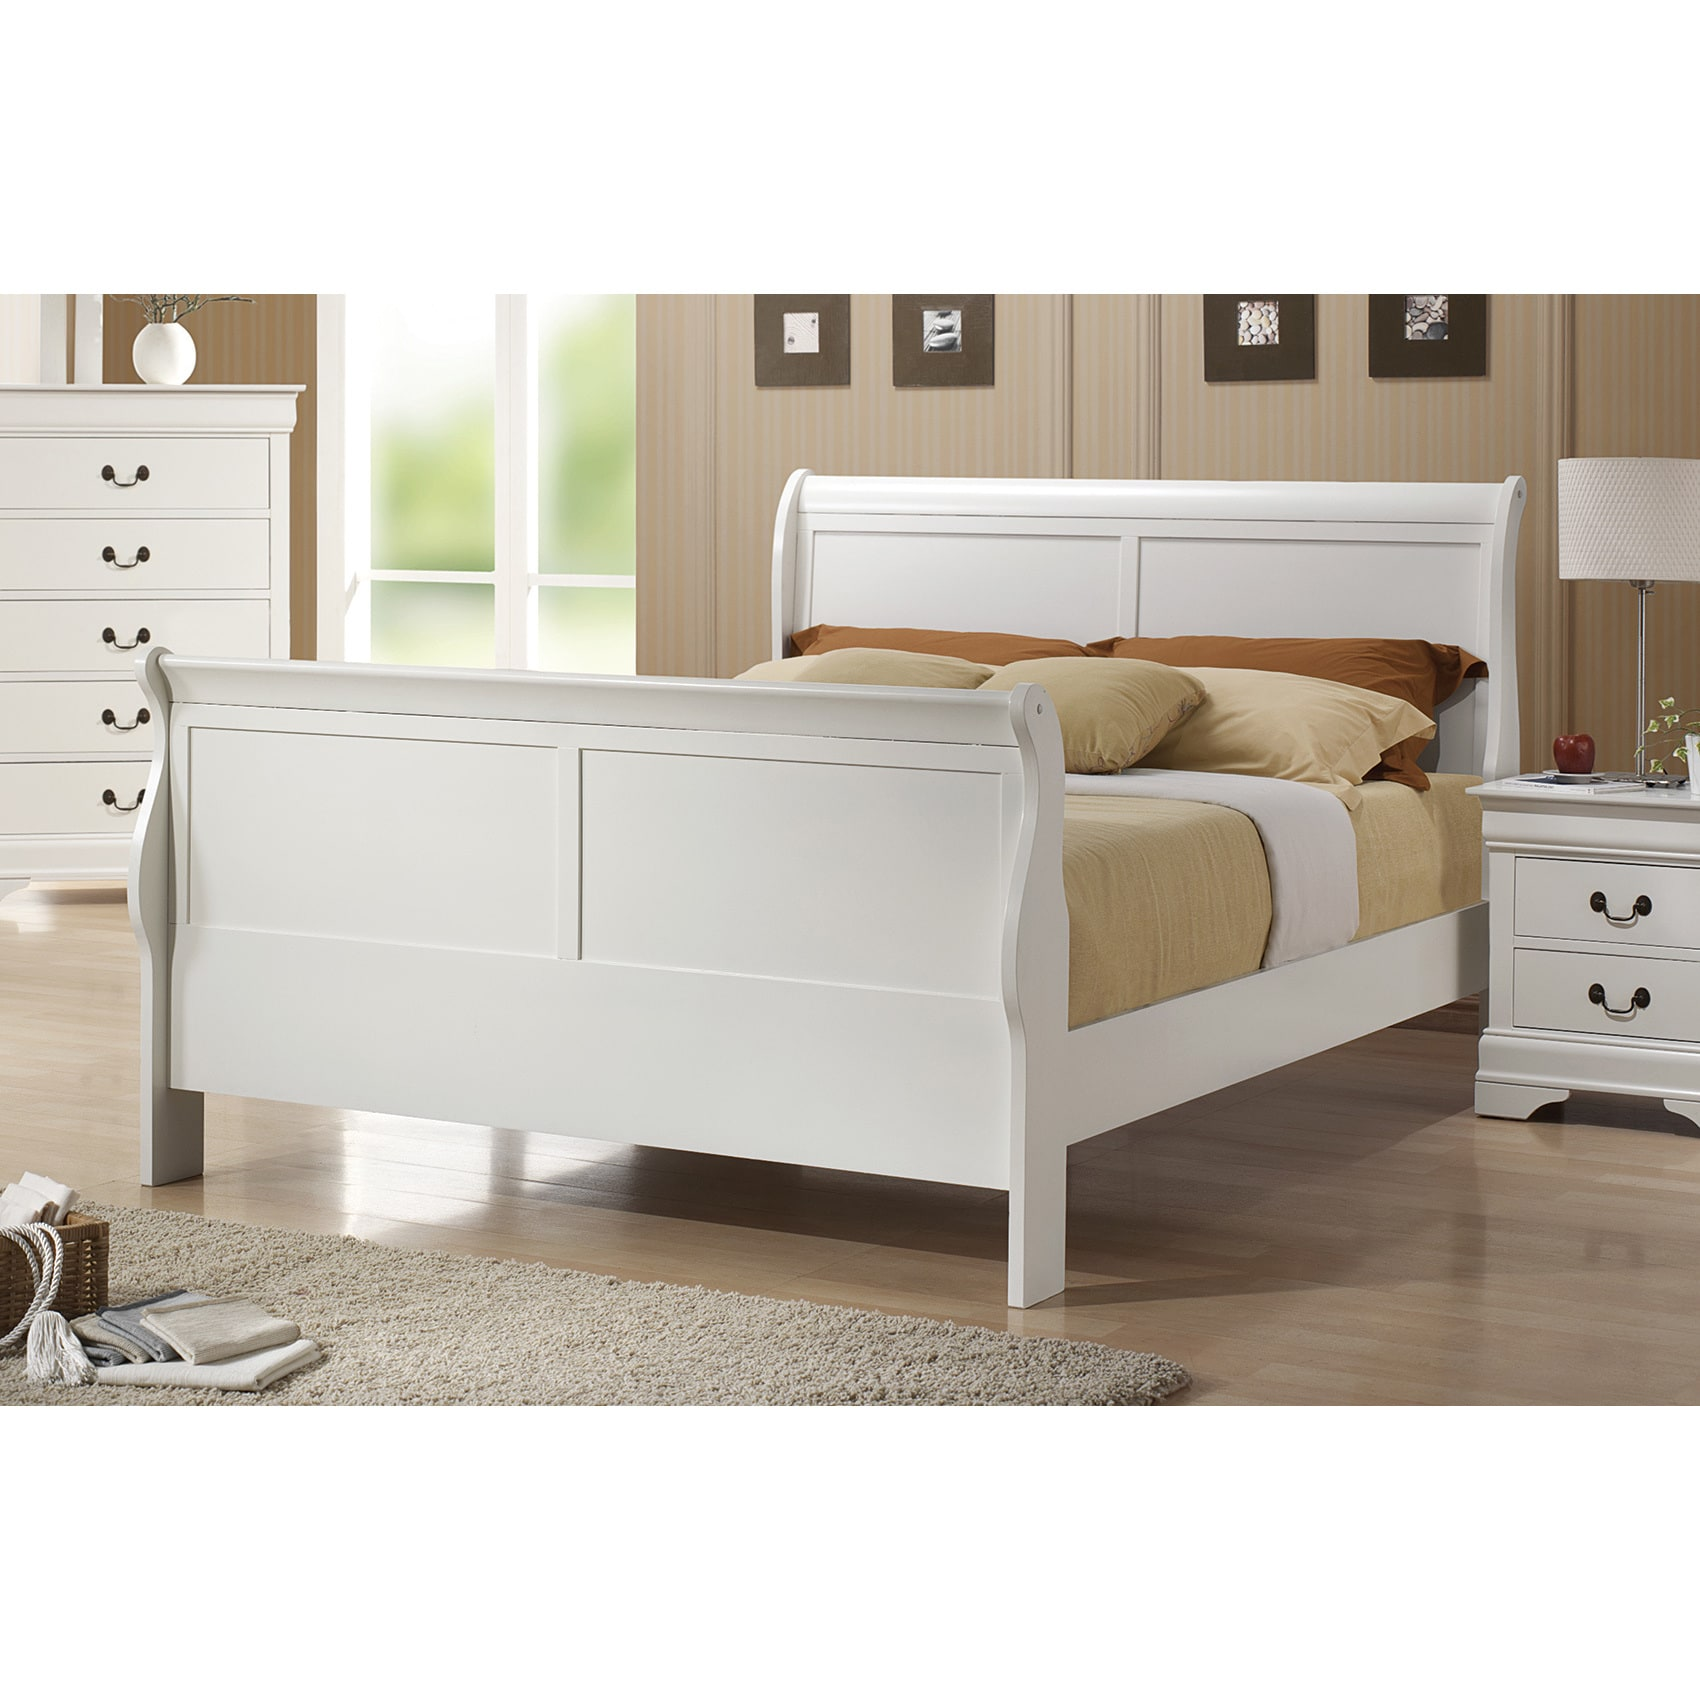 Coaster Furniture Louis Philippe White Bed (Full)